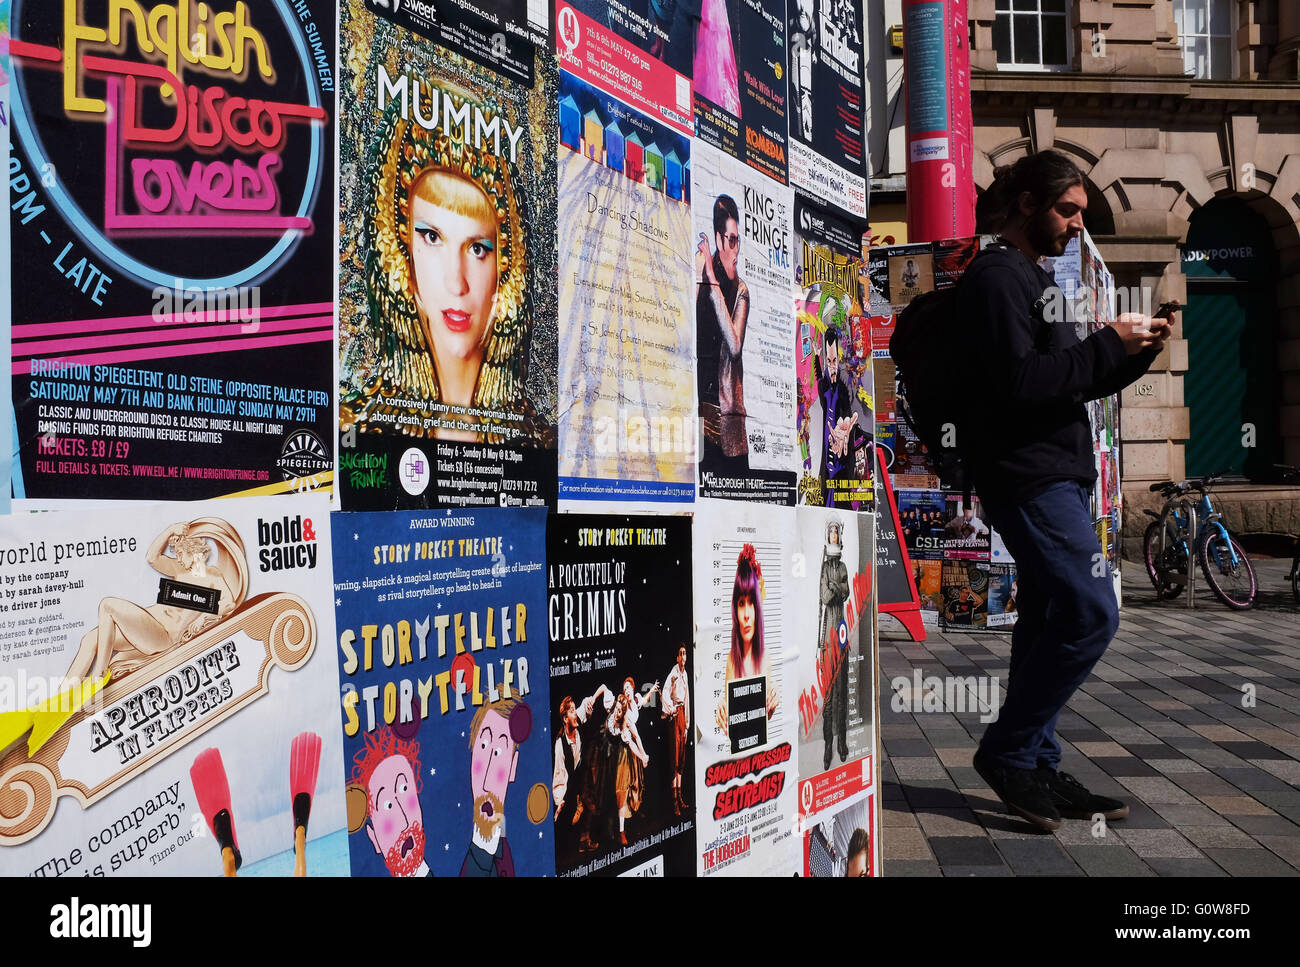 Brighton, UK. 4th May, 2016. Posters advertising the various acts for Fringe City as the city prepares for the start - Stock Image